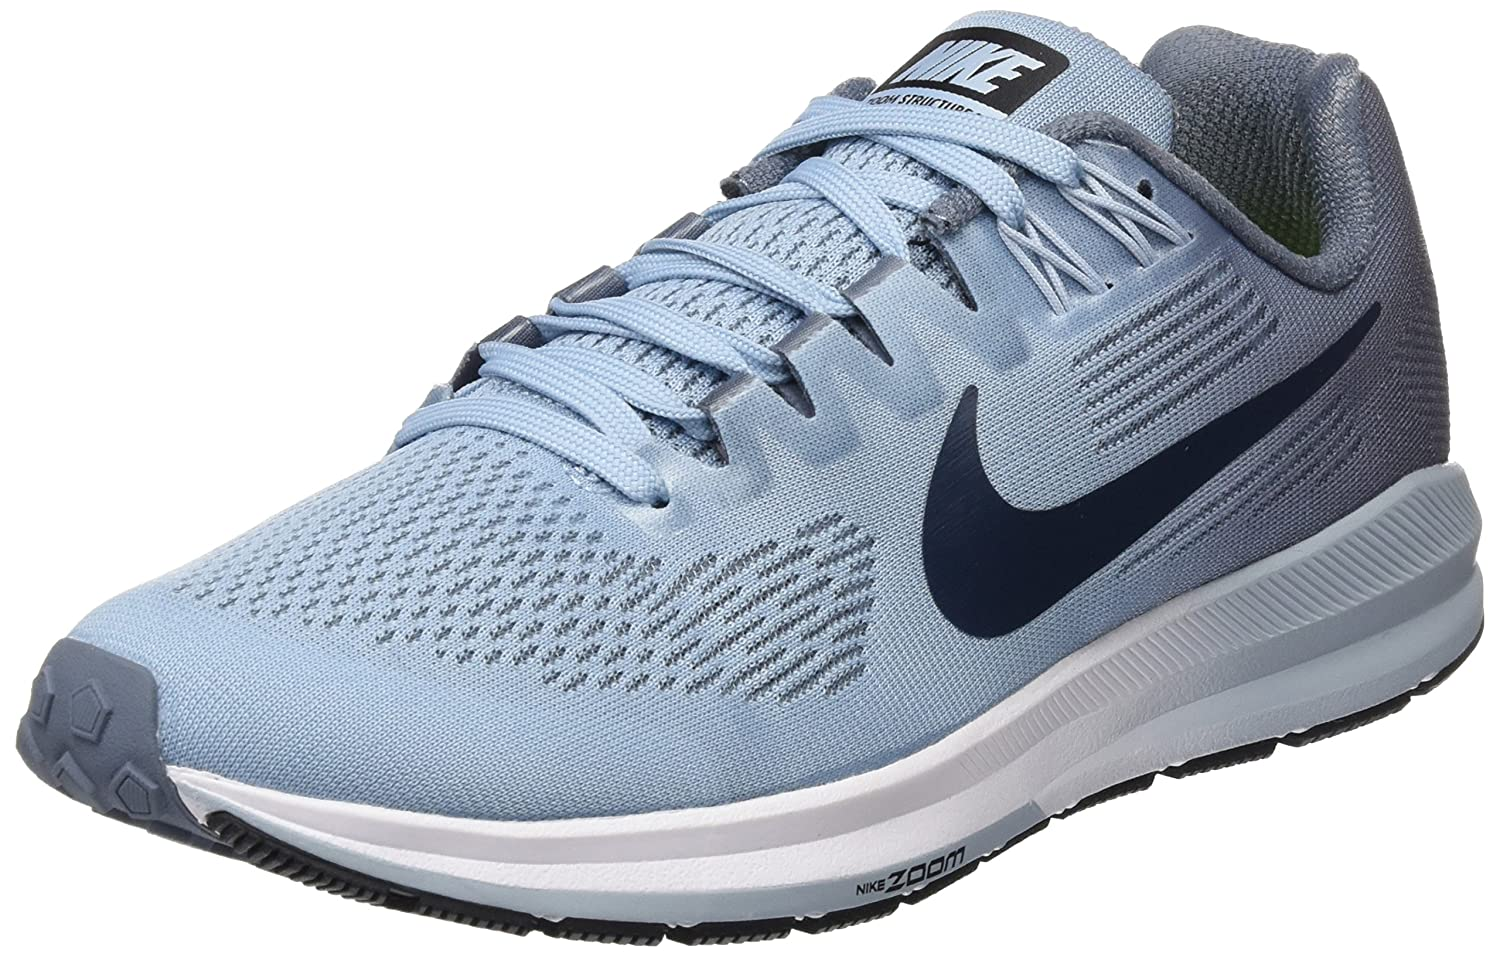 NIKE Women's Air Zoom Structure 21 Running Shoe B075HBHY6S 7 M US|Armory Blue/Armory Navy